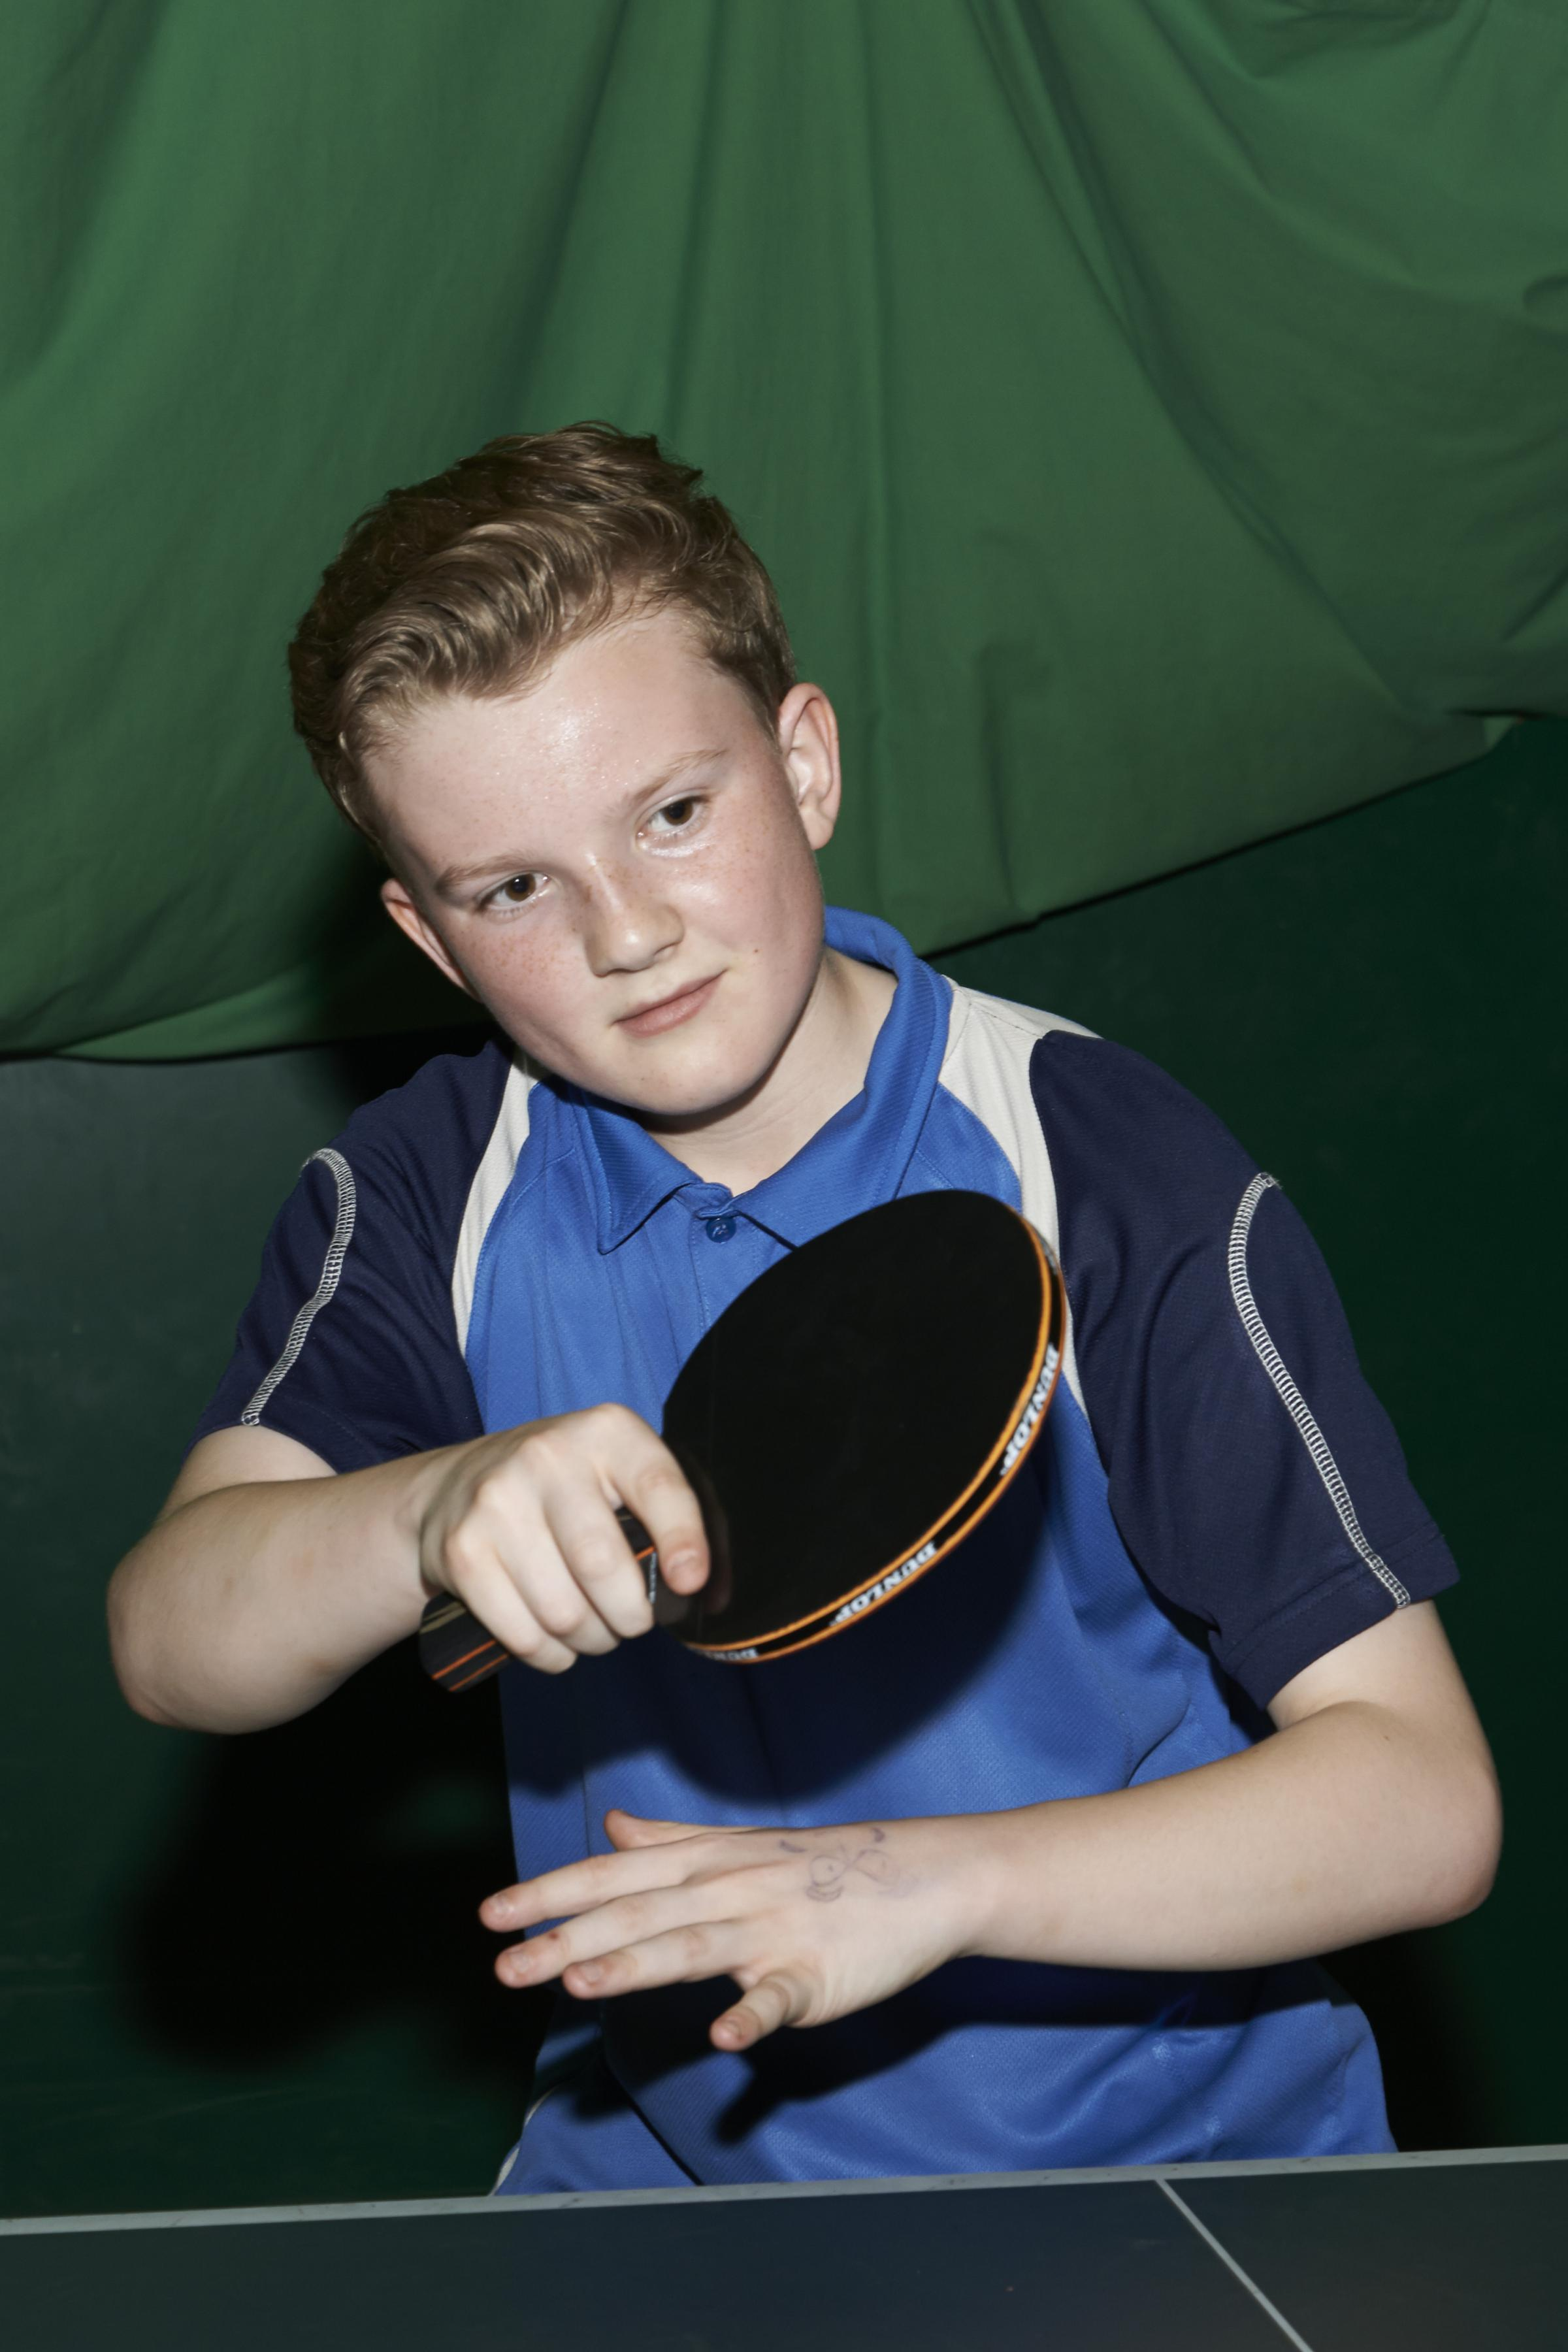 TABLE TENNIS: Rising star Kenzitt ends Ellis' unbeaten record